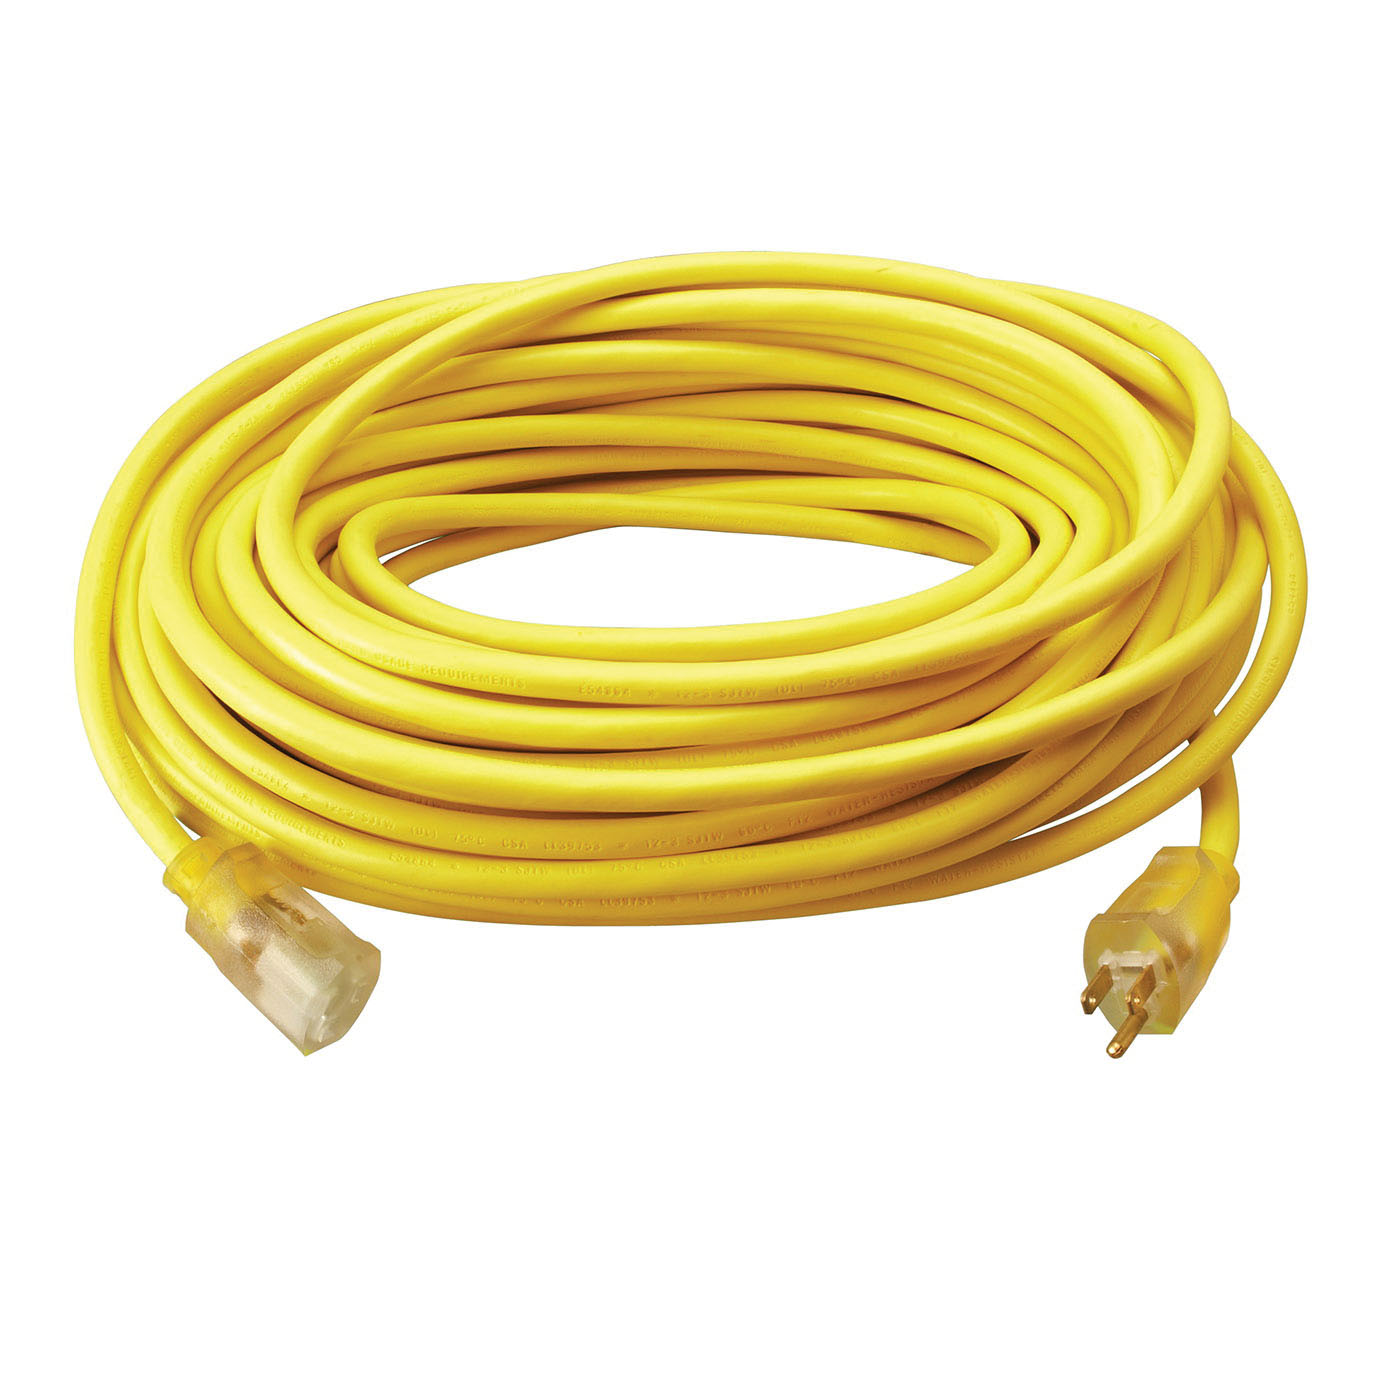 Southwire® 2589SW0002 Yellow Heavy Duty Extension Cord, 100 ft